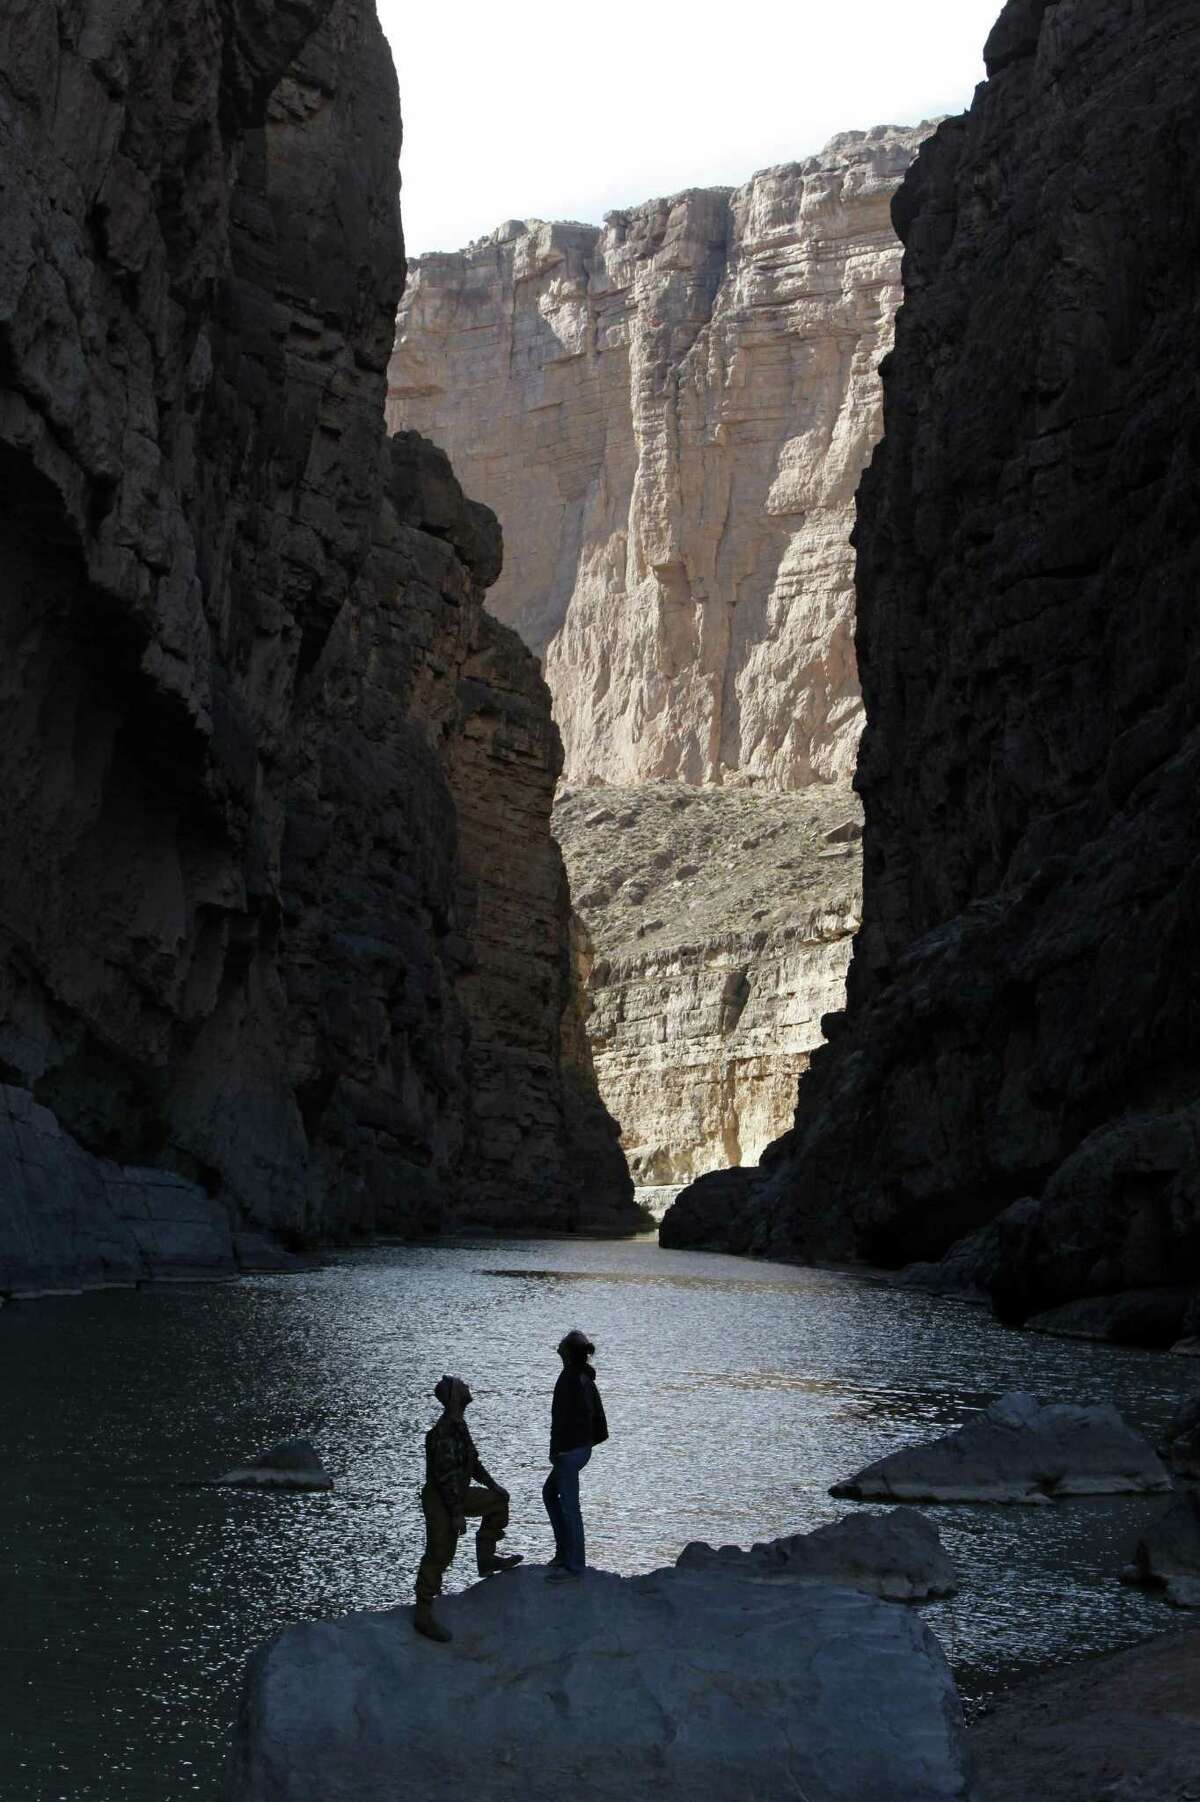 Kyle Crabtree and Cassidy McCaferry from Midland, Texas take in the majesty of the canyon walls as the Rio Grande River flows through Santa Elena Canyon in Big Bend National Park.